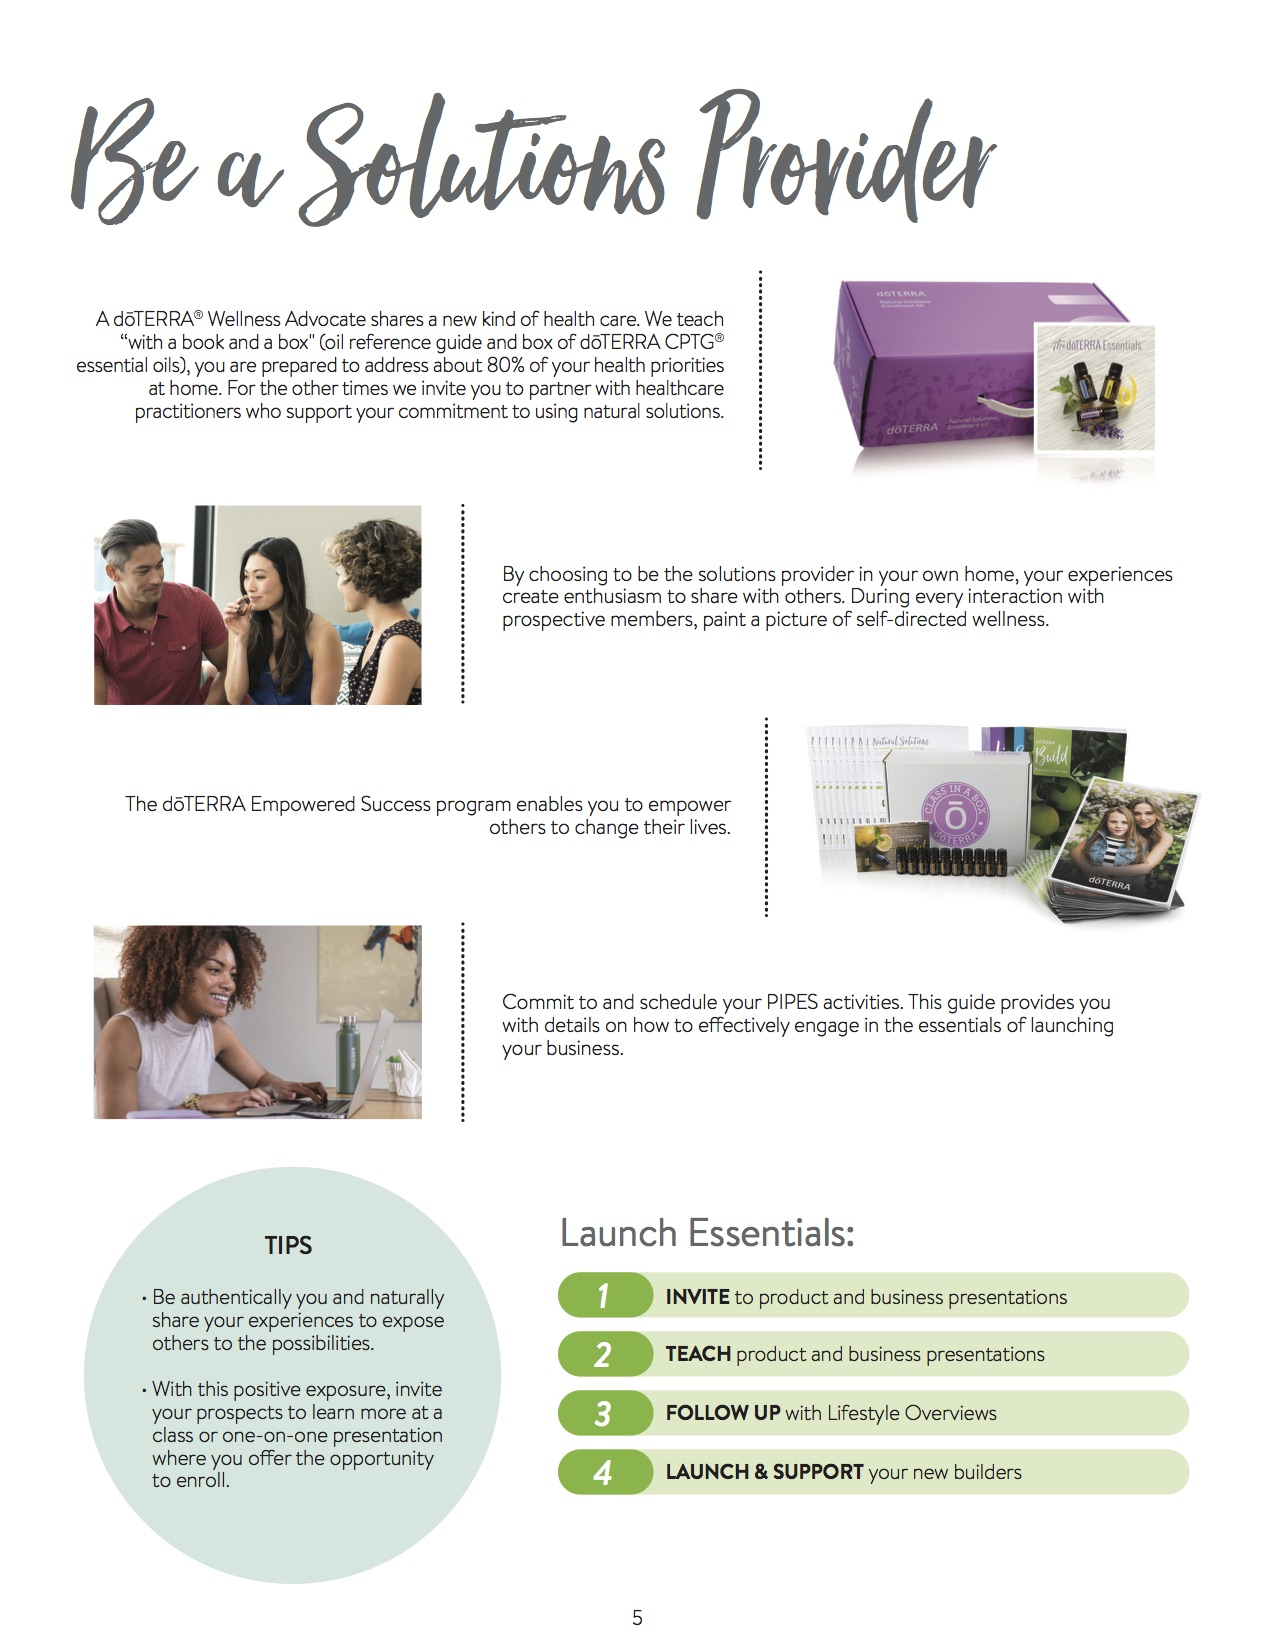 empowered-success-launch-guide 5.jpg